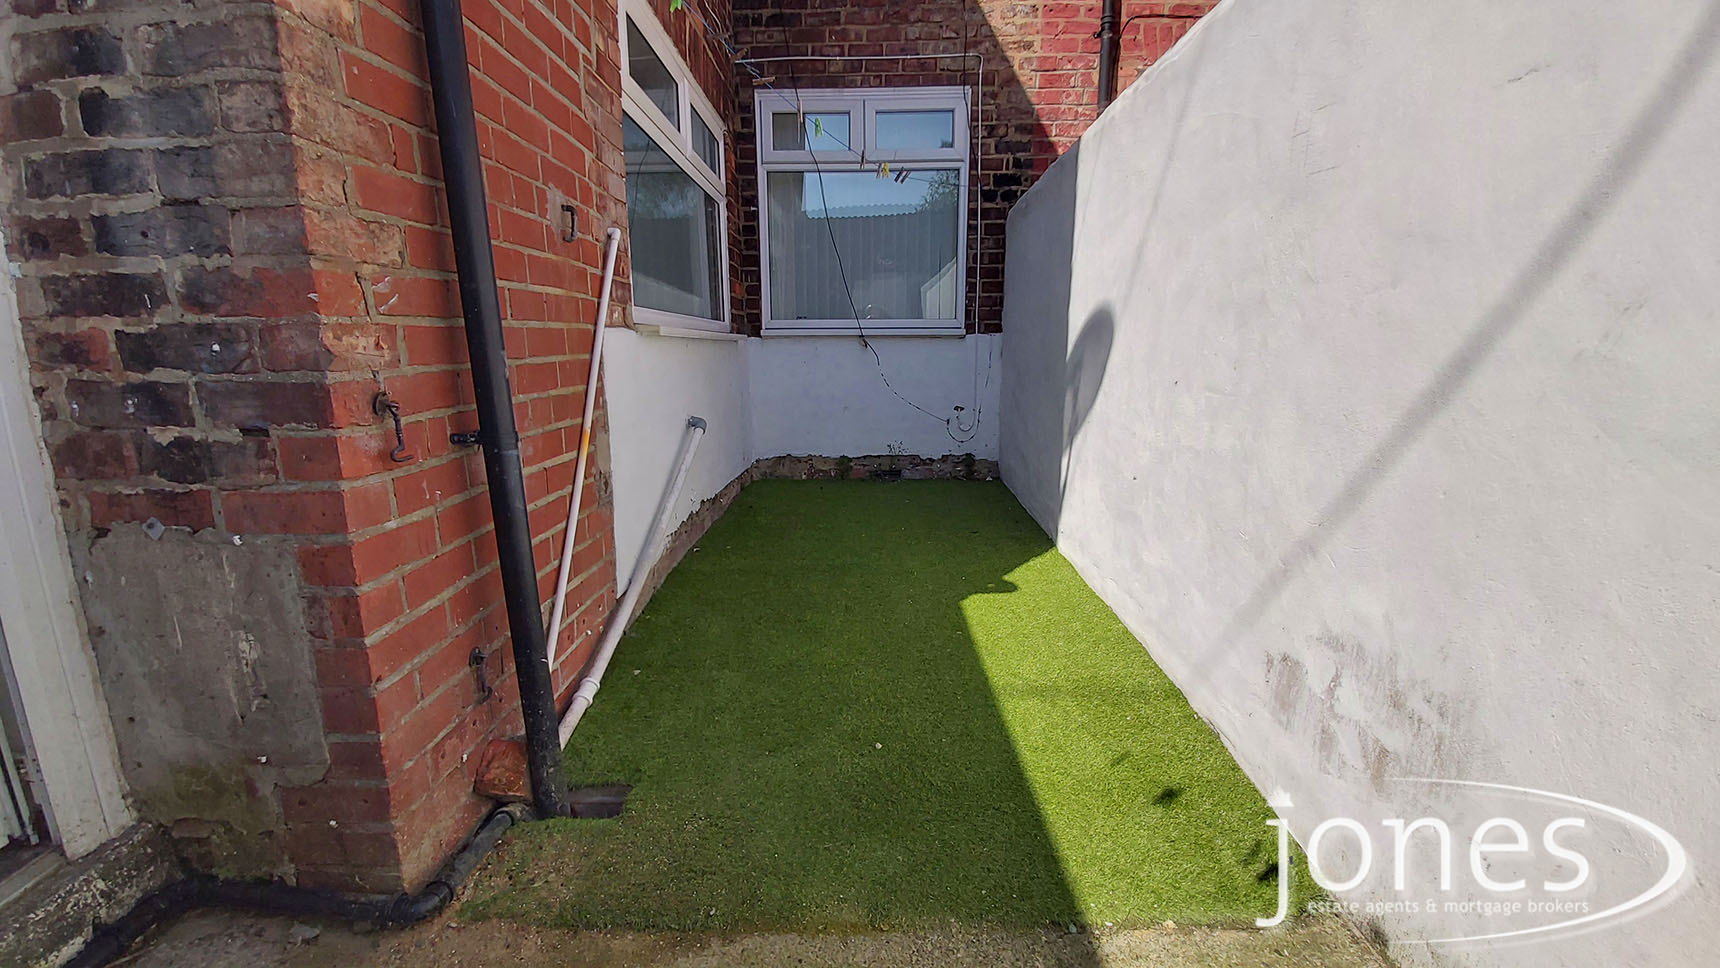 Home for Sale Let - Photo 10 Mansfield Avenue, Thornaby, Stockton on Tees, TS17 7HQ